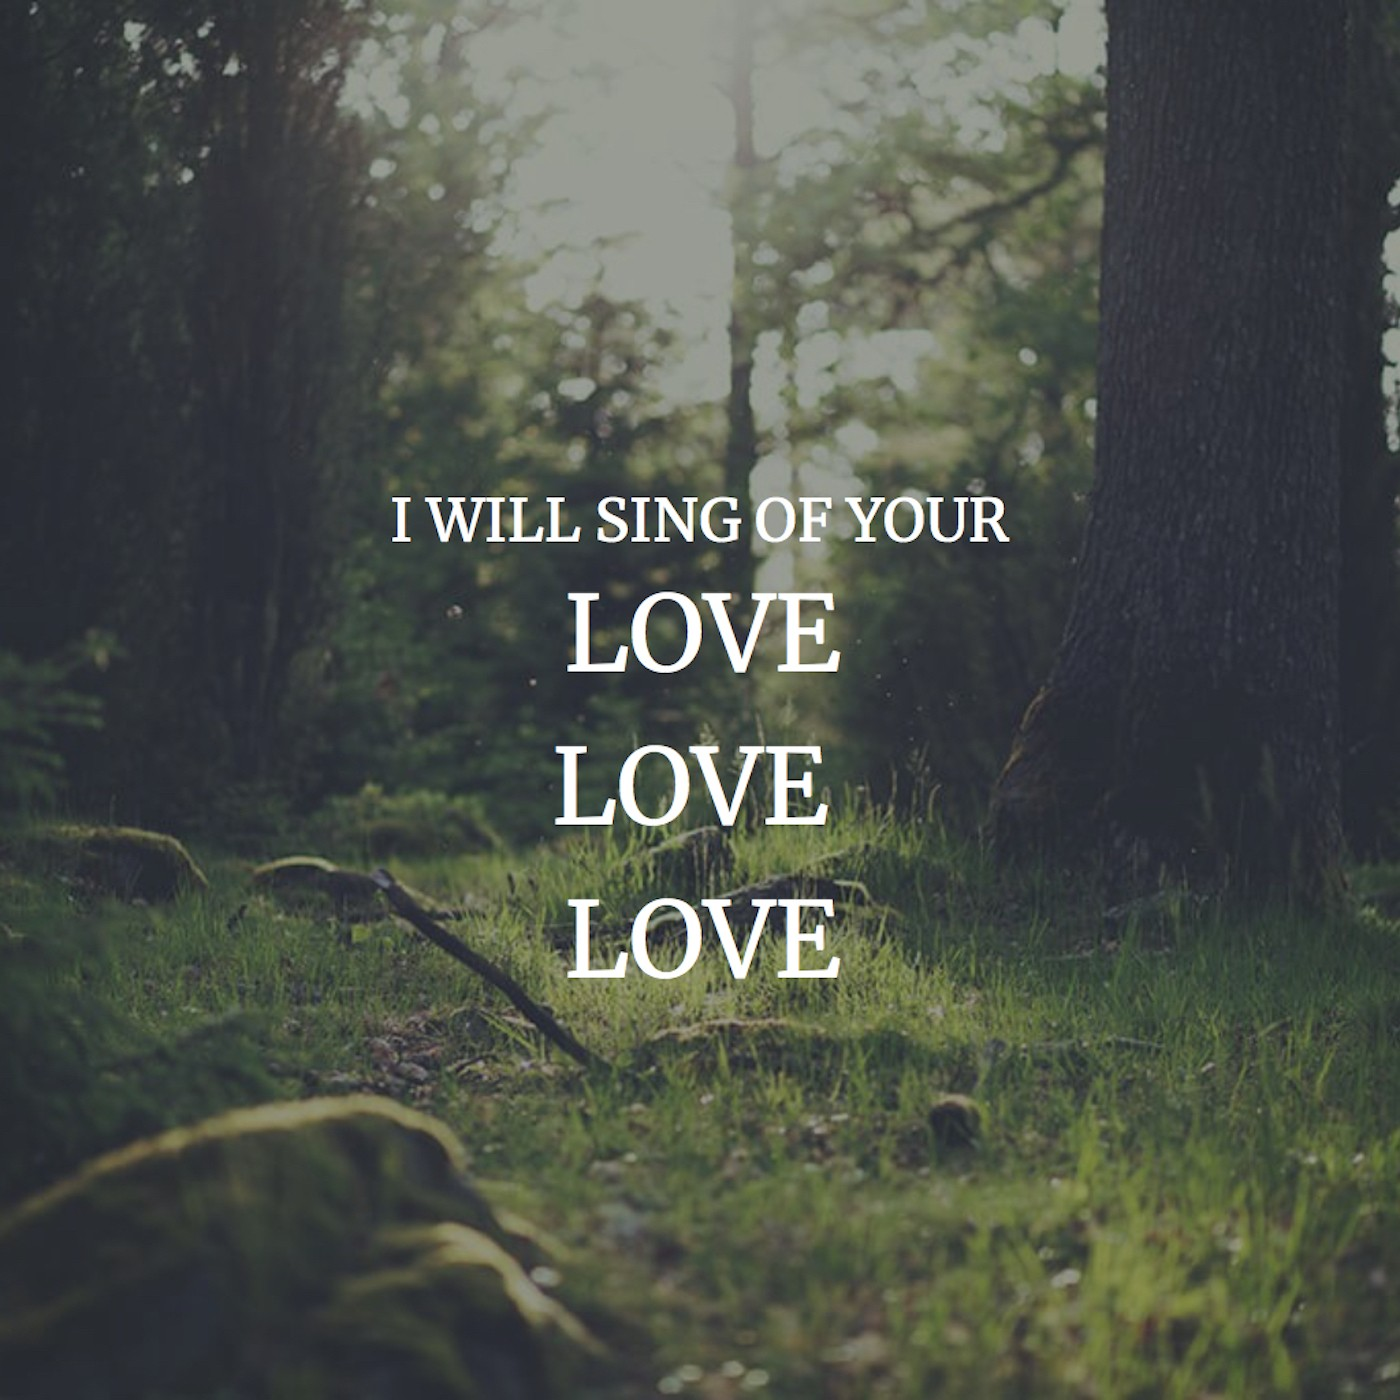 I Will Sing of Your Love, Love, Love